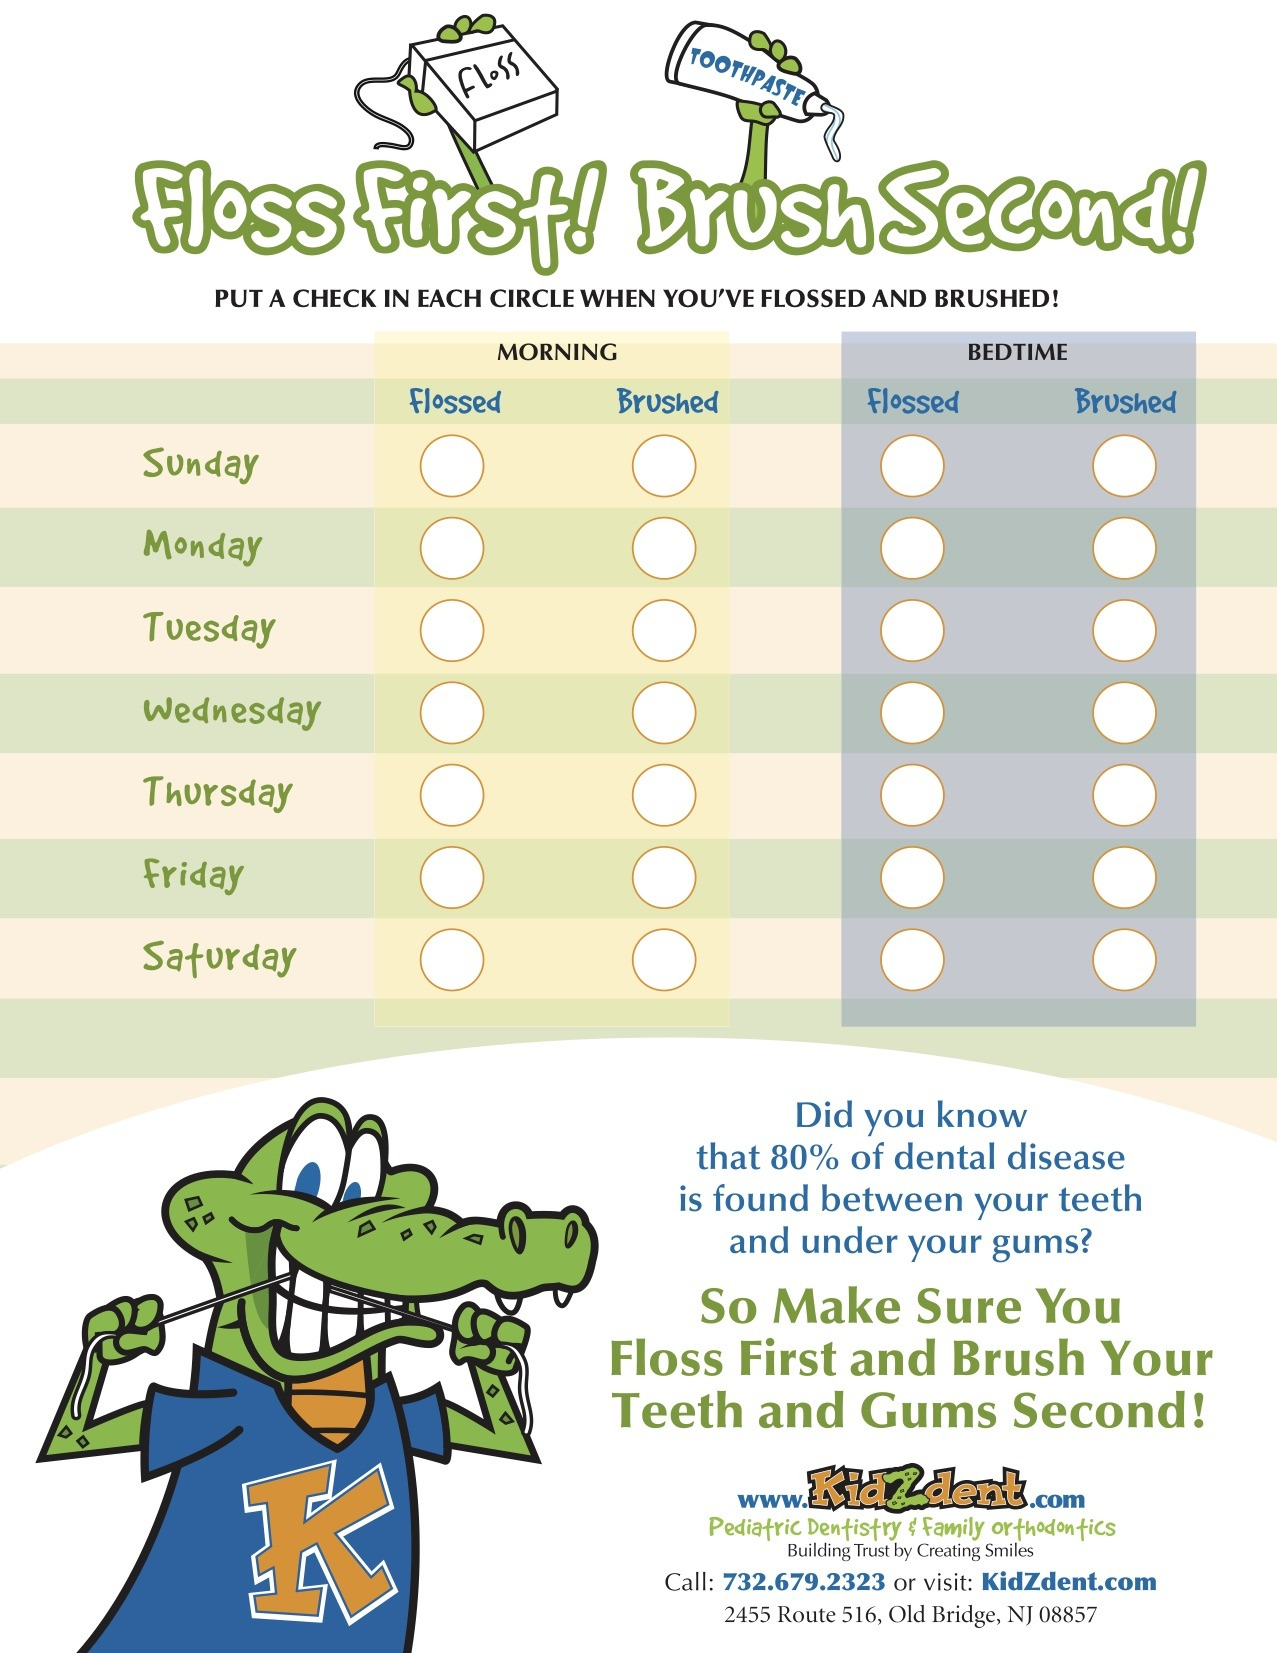 KidzDent Flossing and Brushing Checklist Flyer